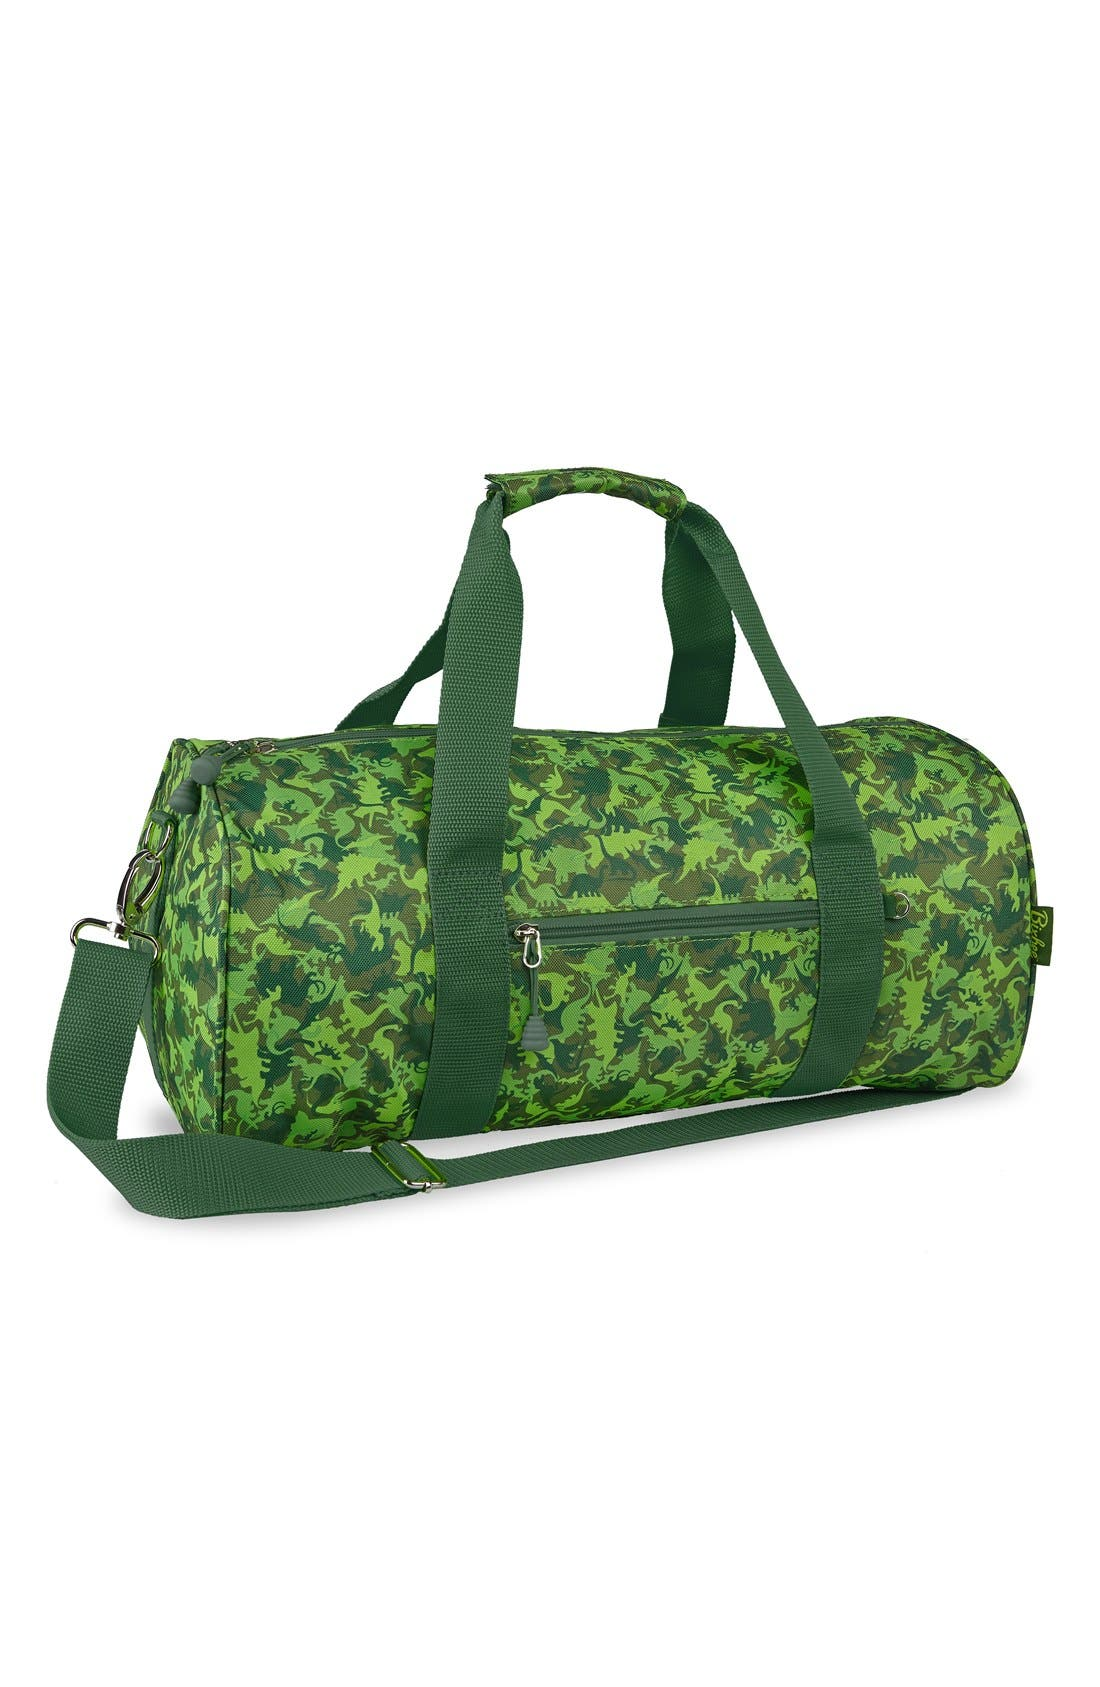 Bixbee 'Large Dino Camo' Sports Duffel Bag (Boys)